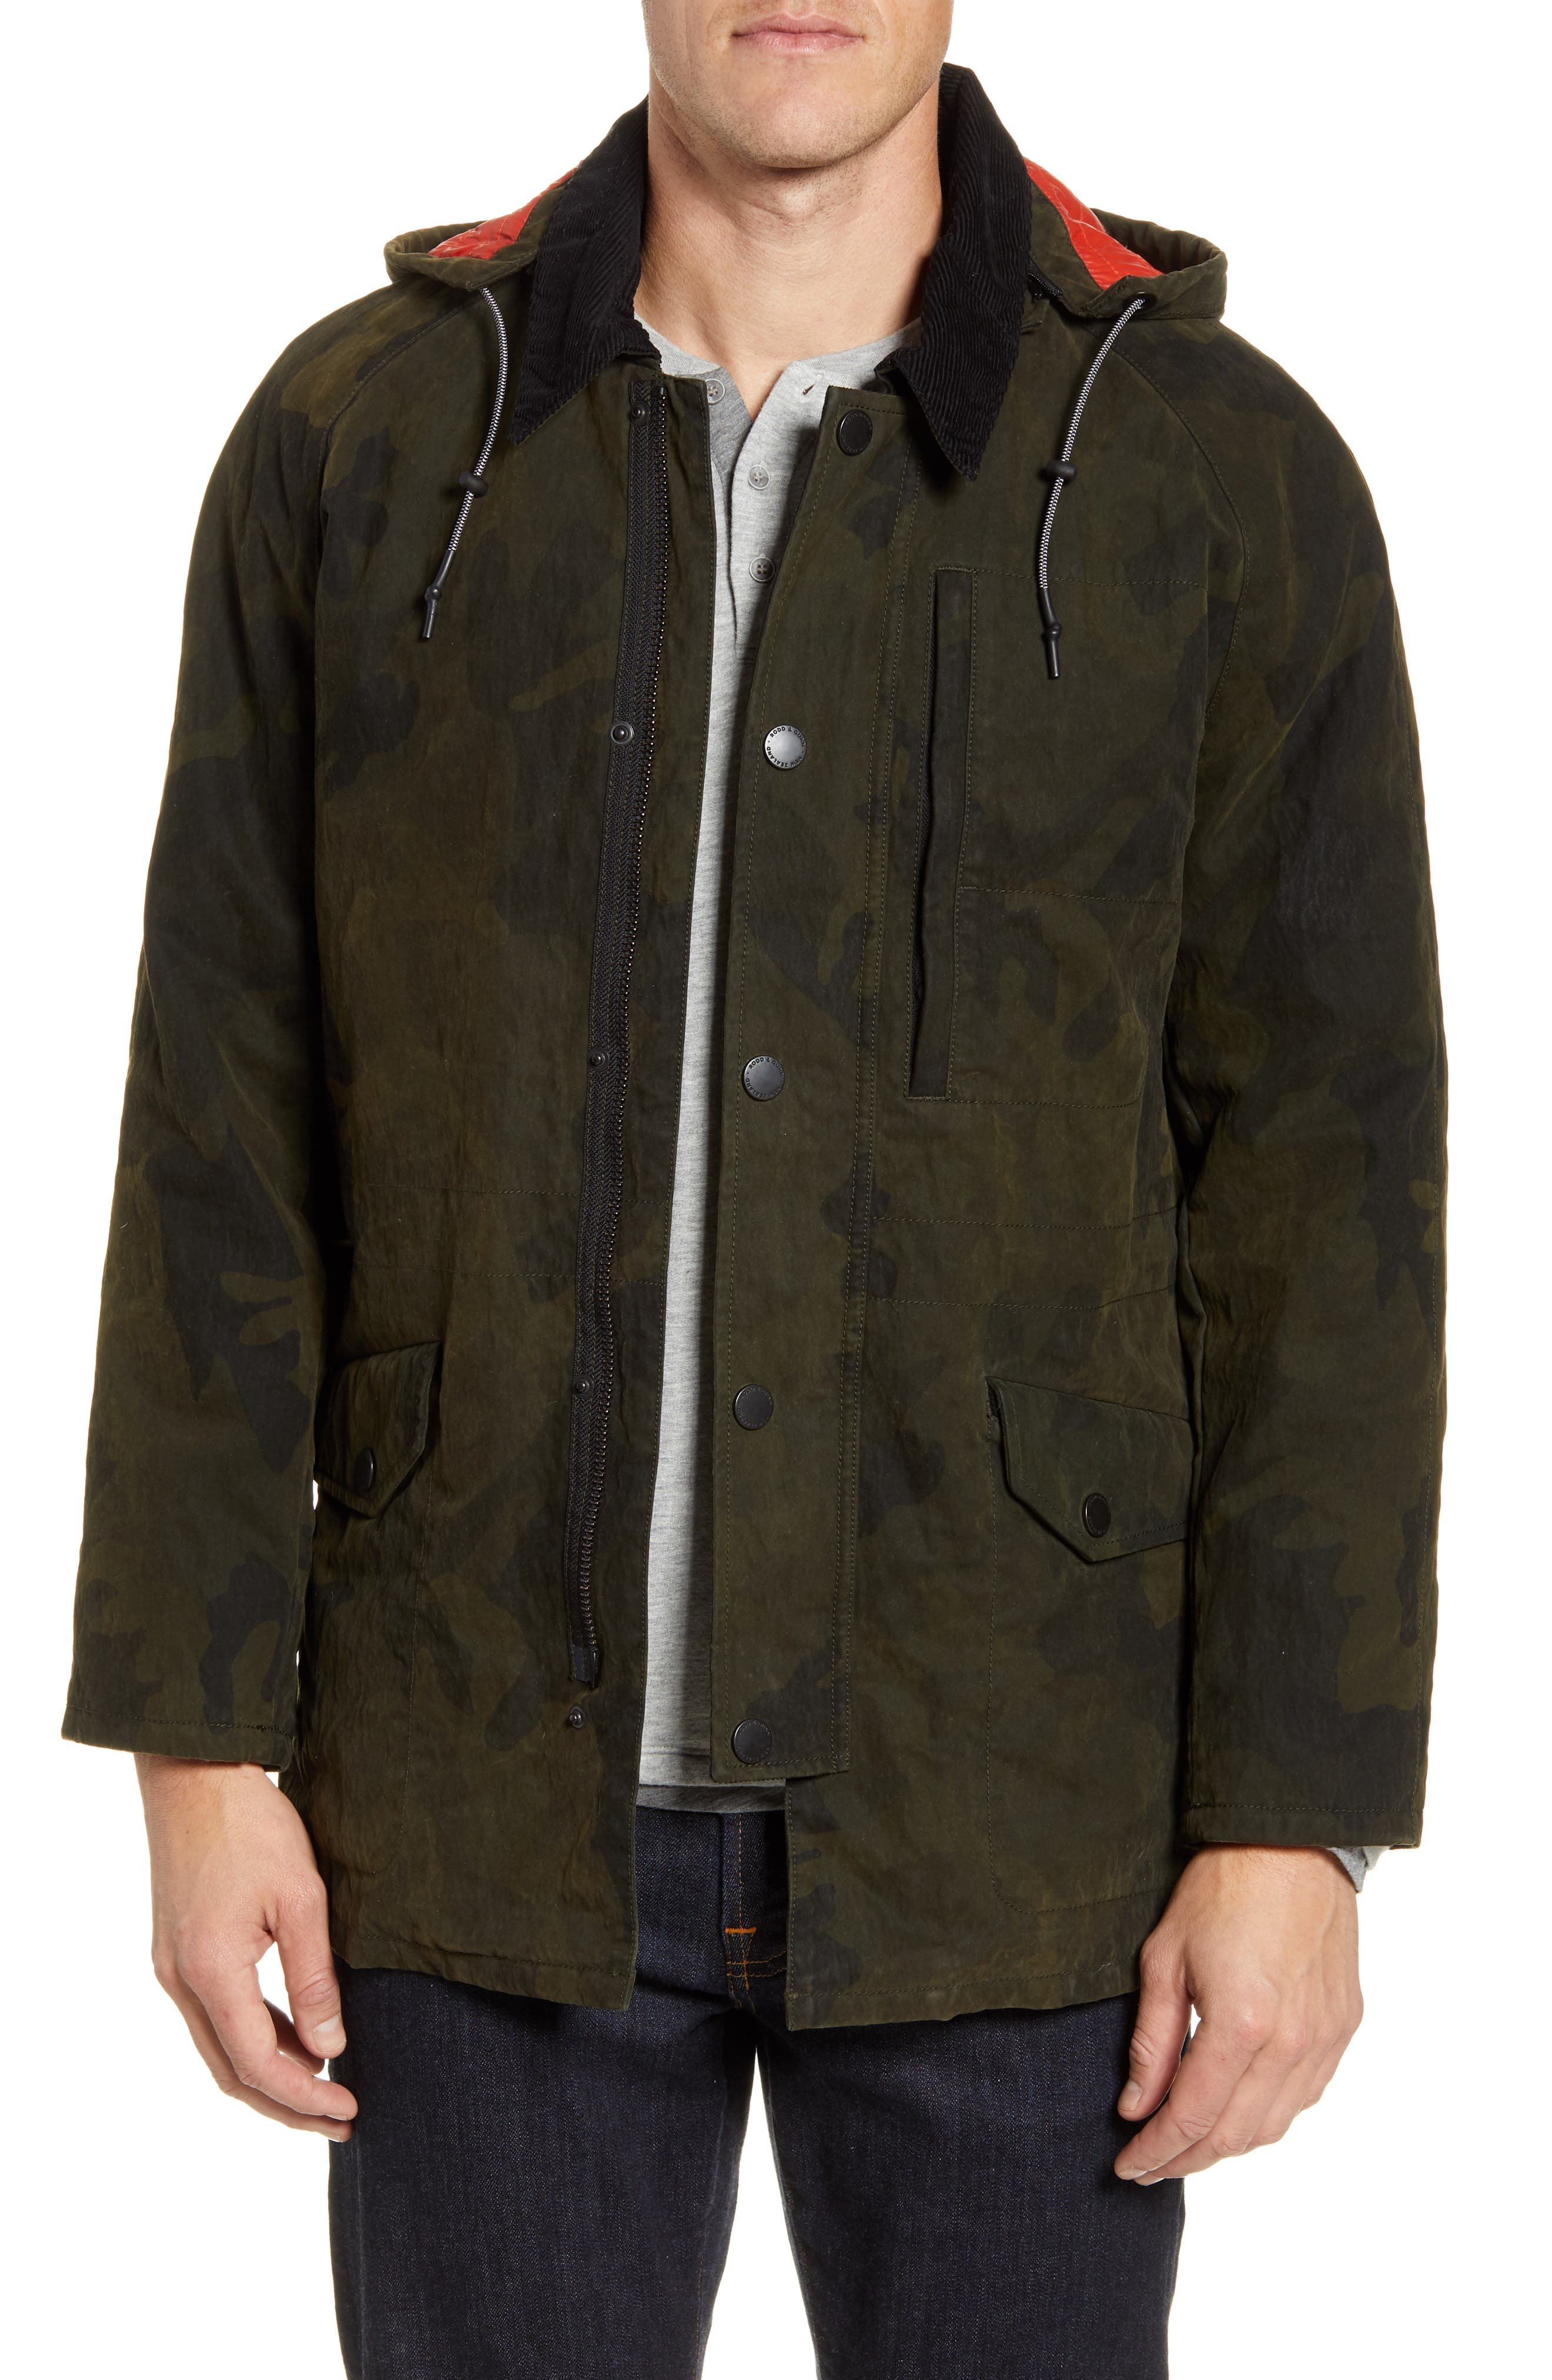 RODD AND GUNN Earnslaw Resin Camo Jacket at Nordstrom Rack